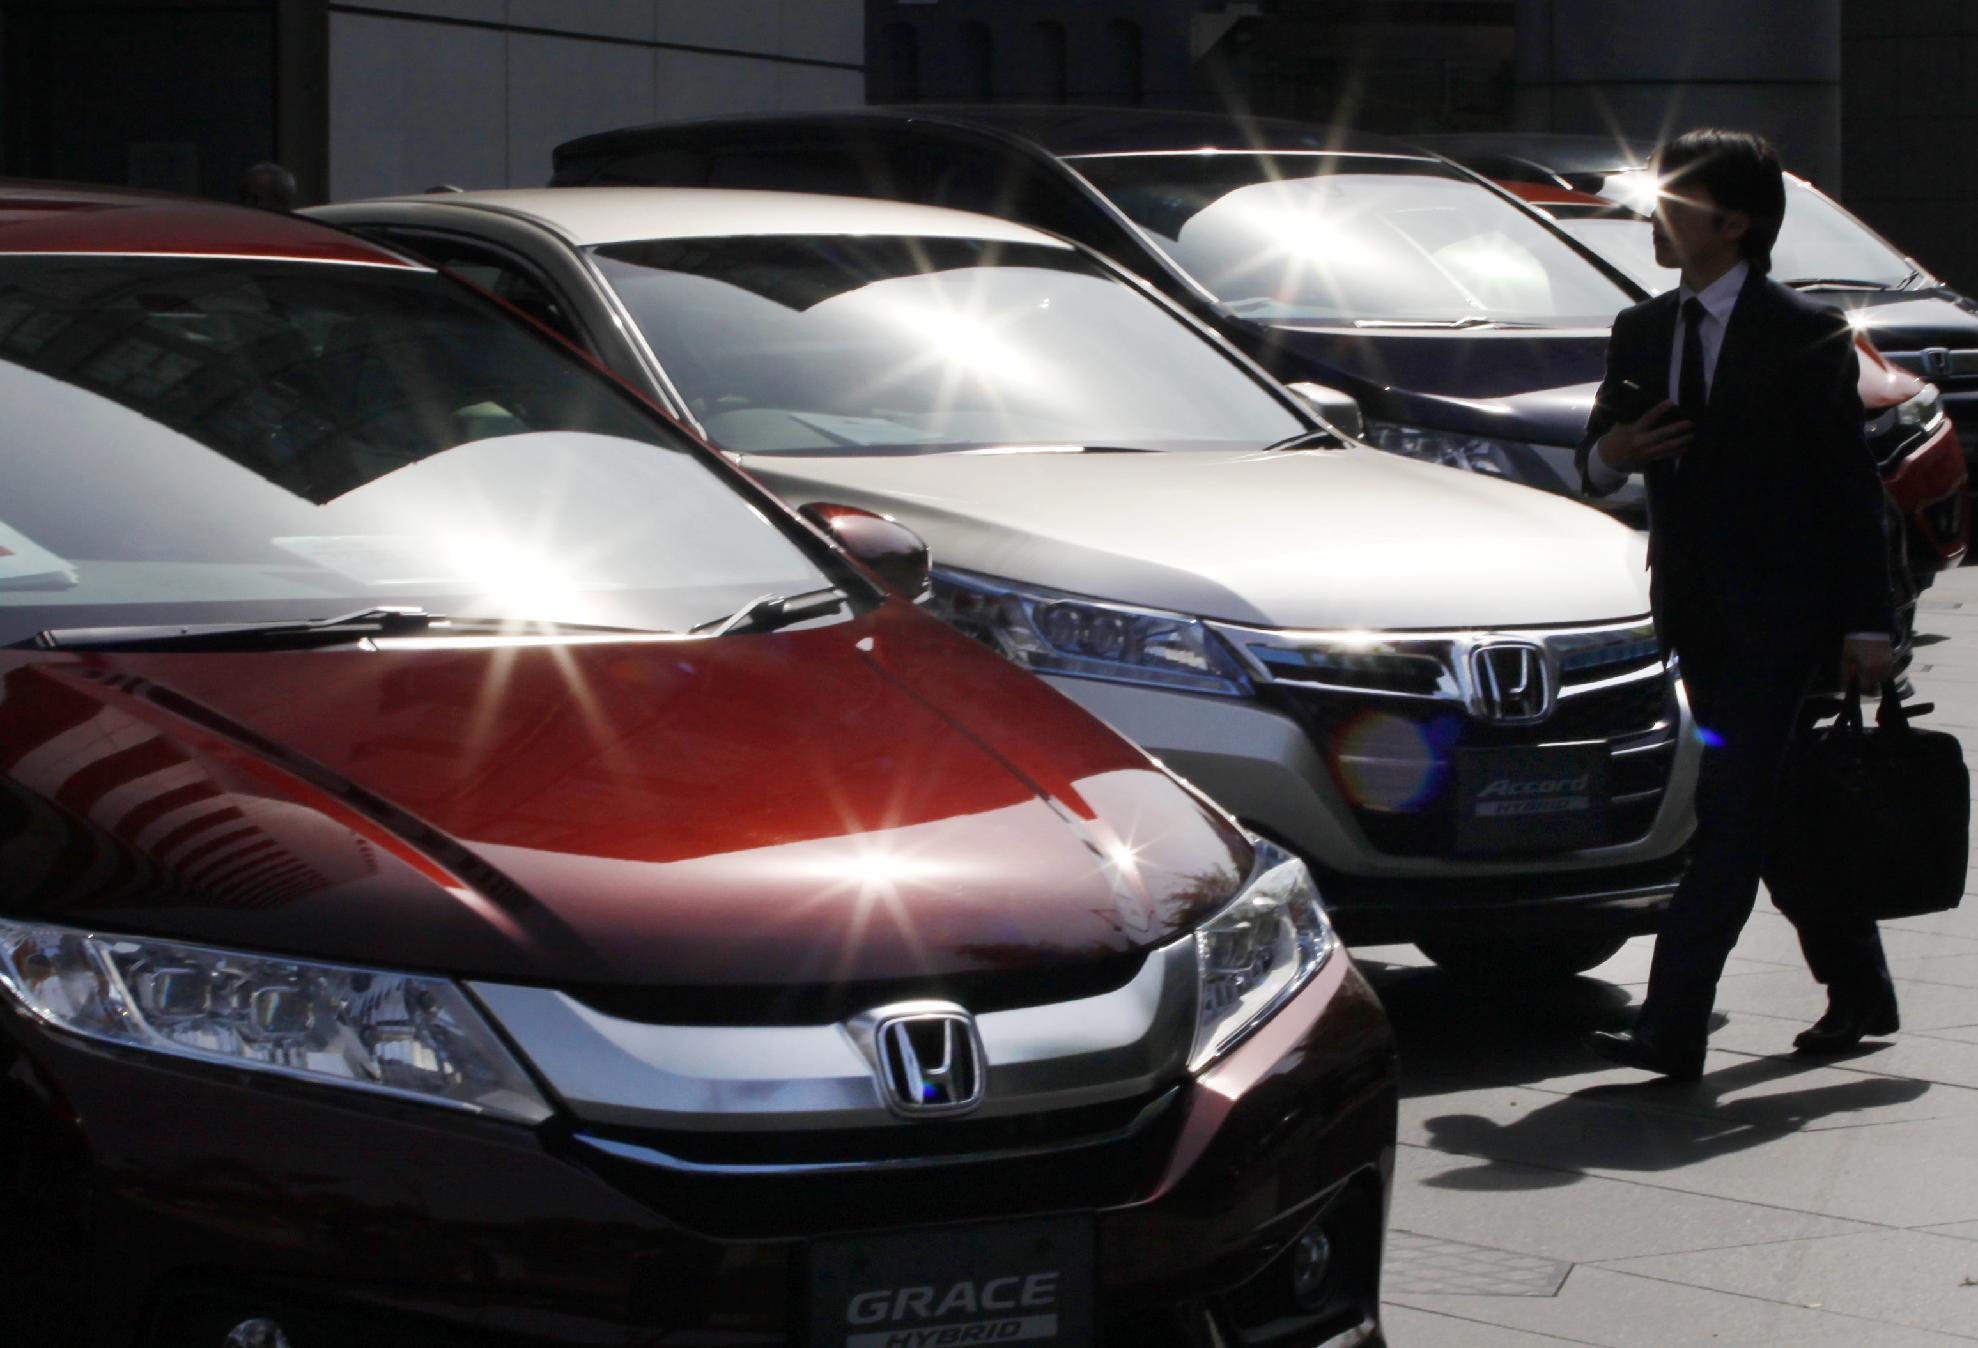 Honda's profit drops on air bag recall woes despite weak yen